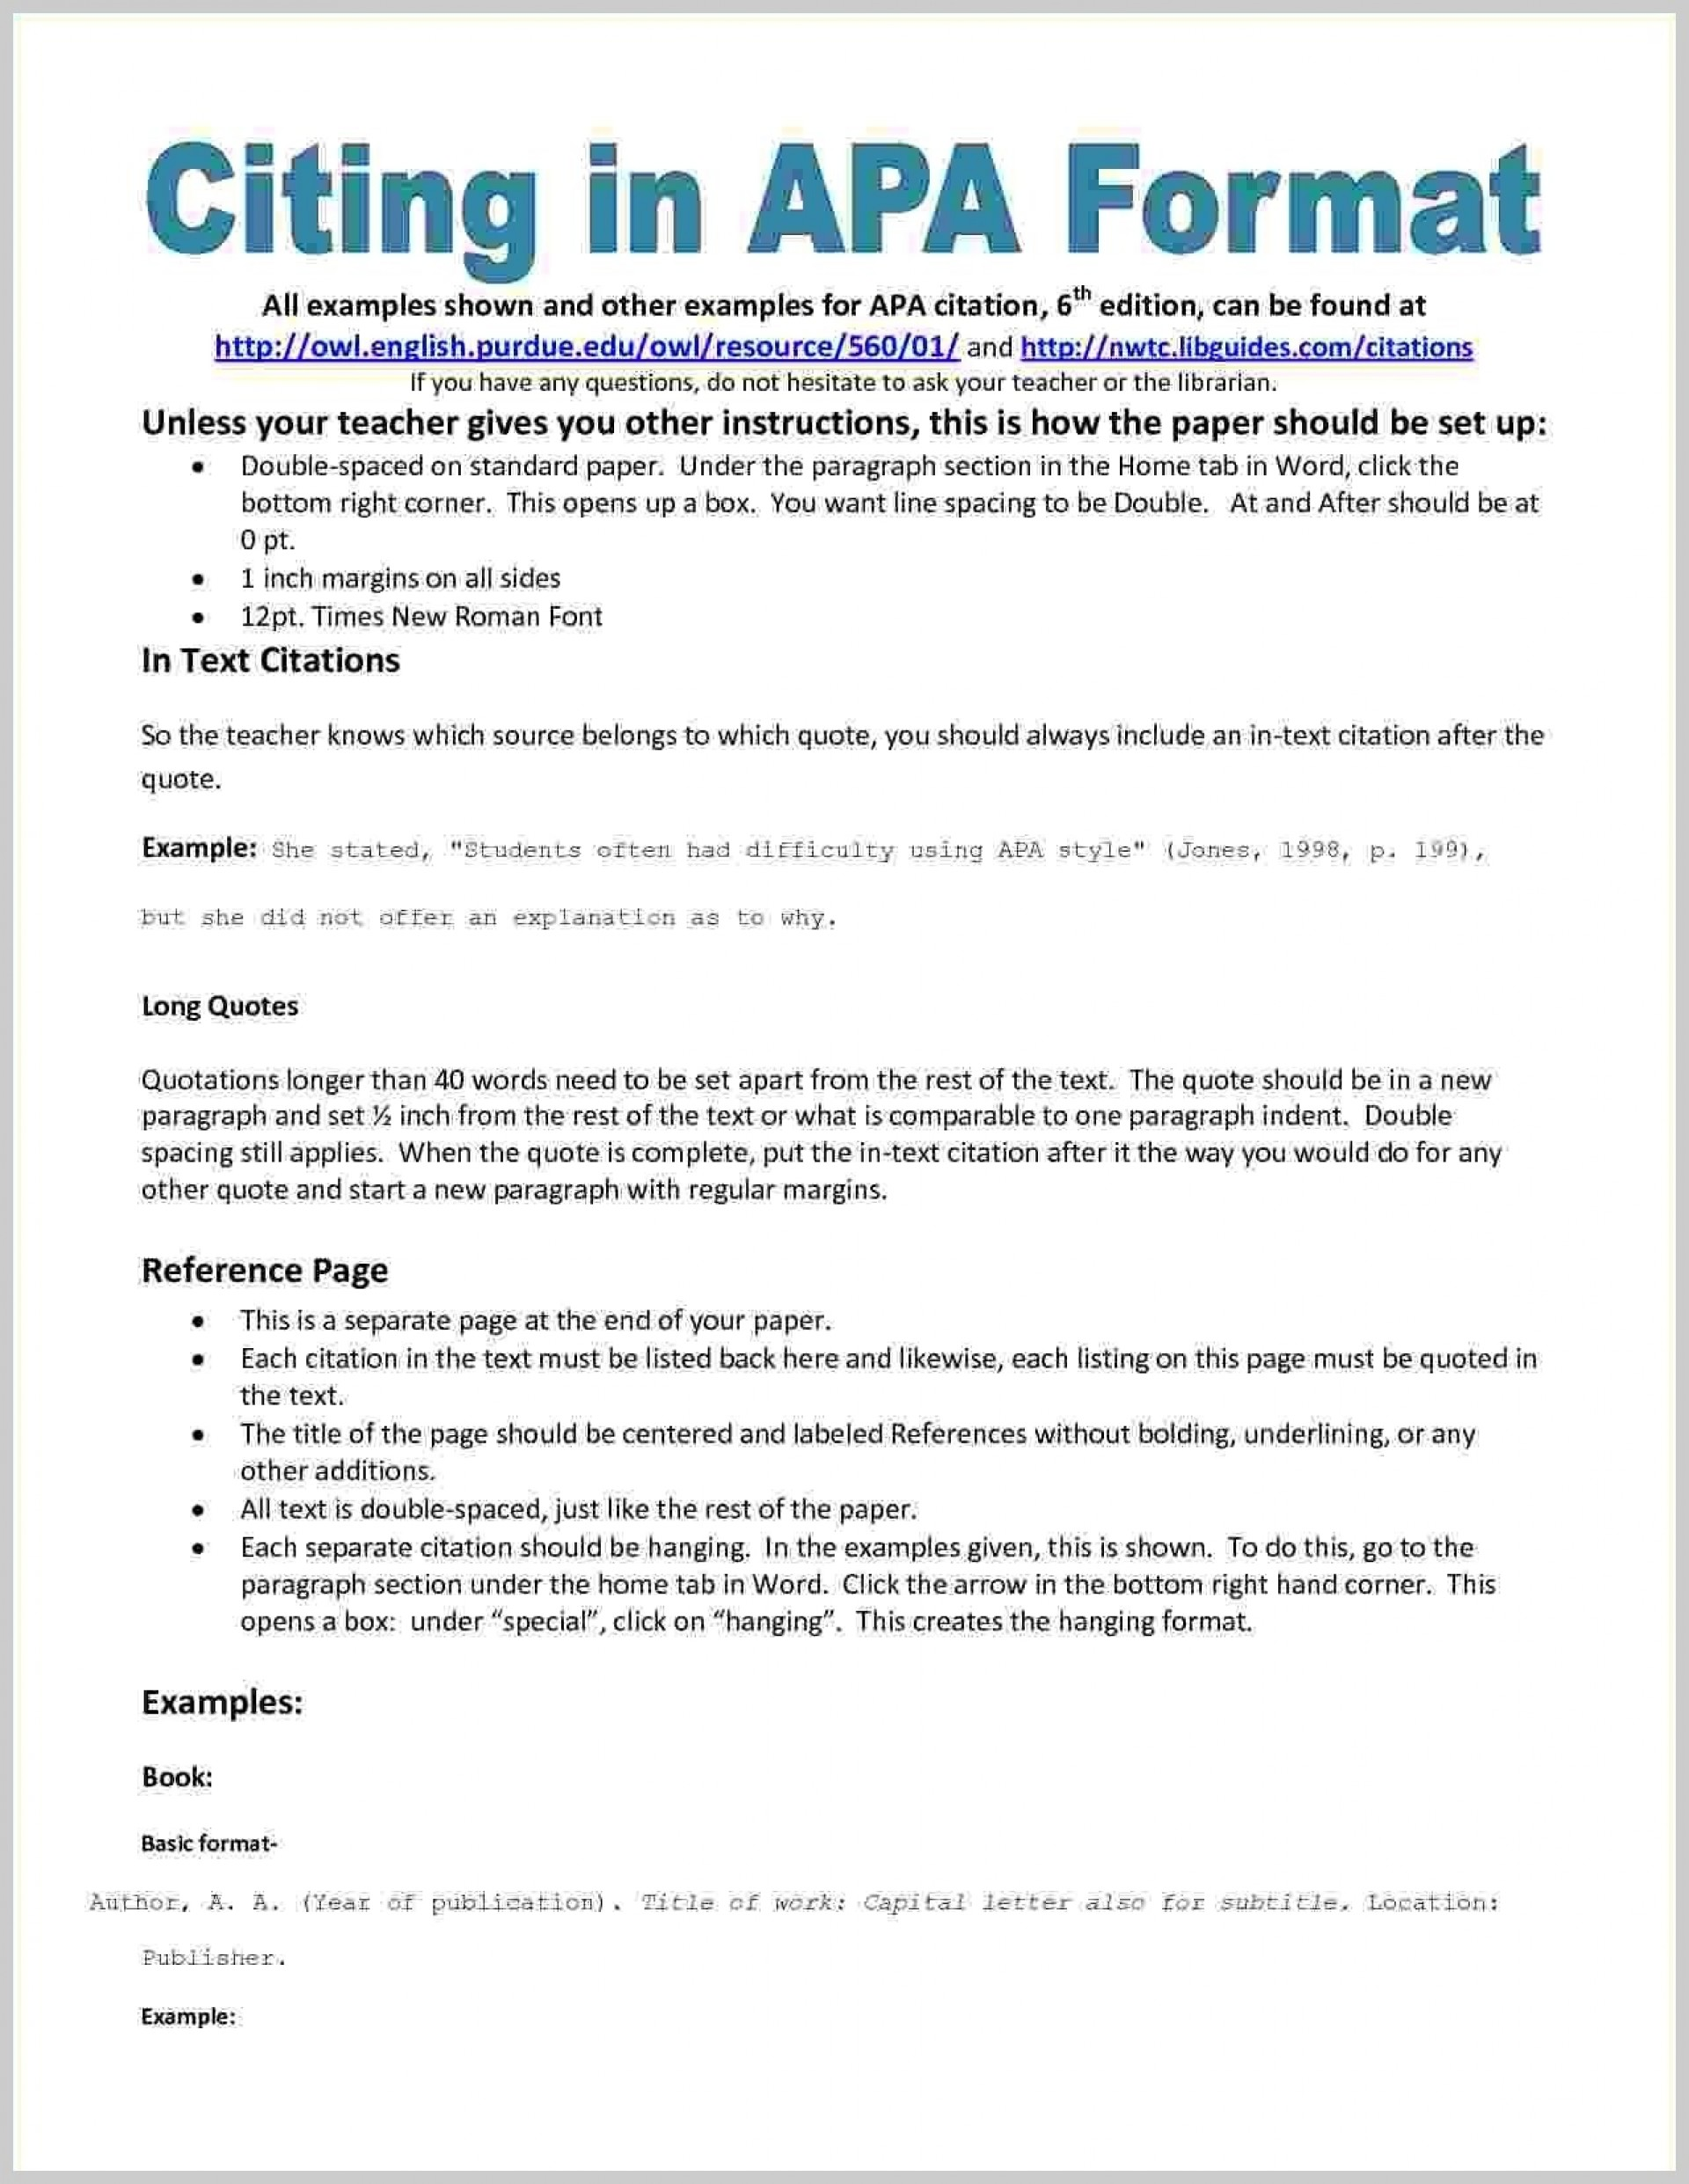 003 Research Paper Apa Style Reference In Text Citation Mla Examples Toreto Co Line Database Security Related Impressive Papers Pdf 1920